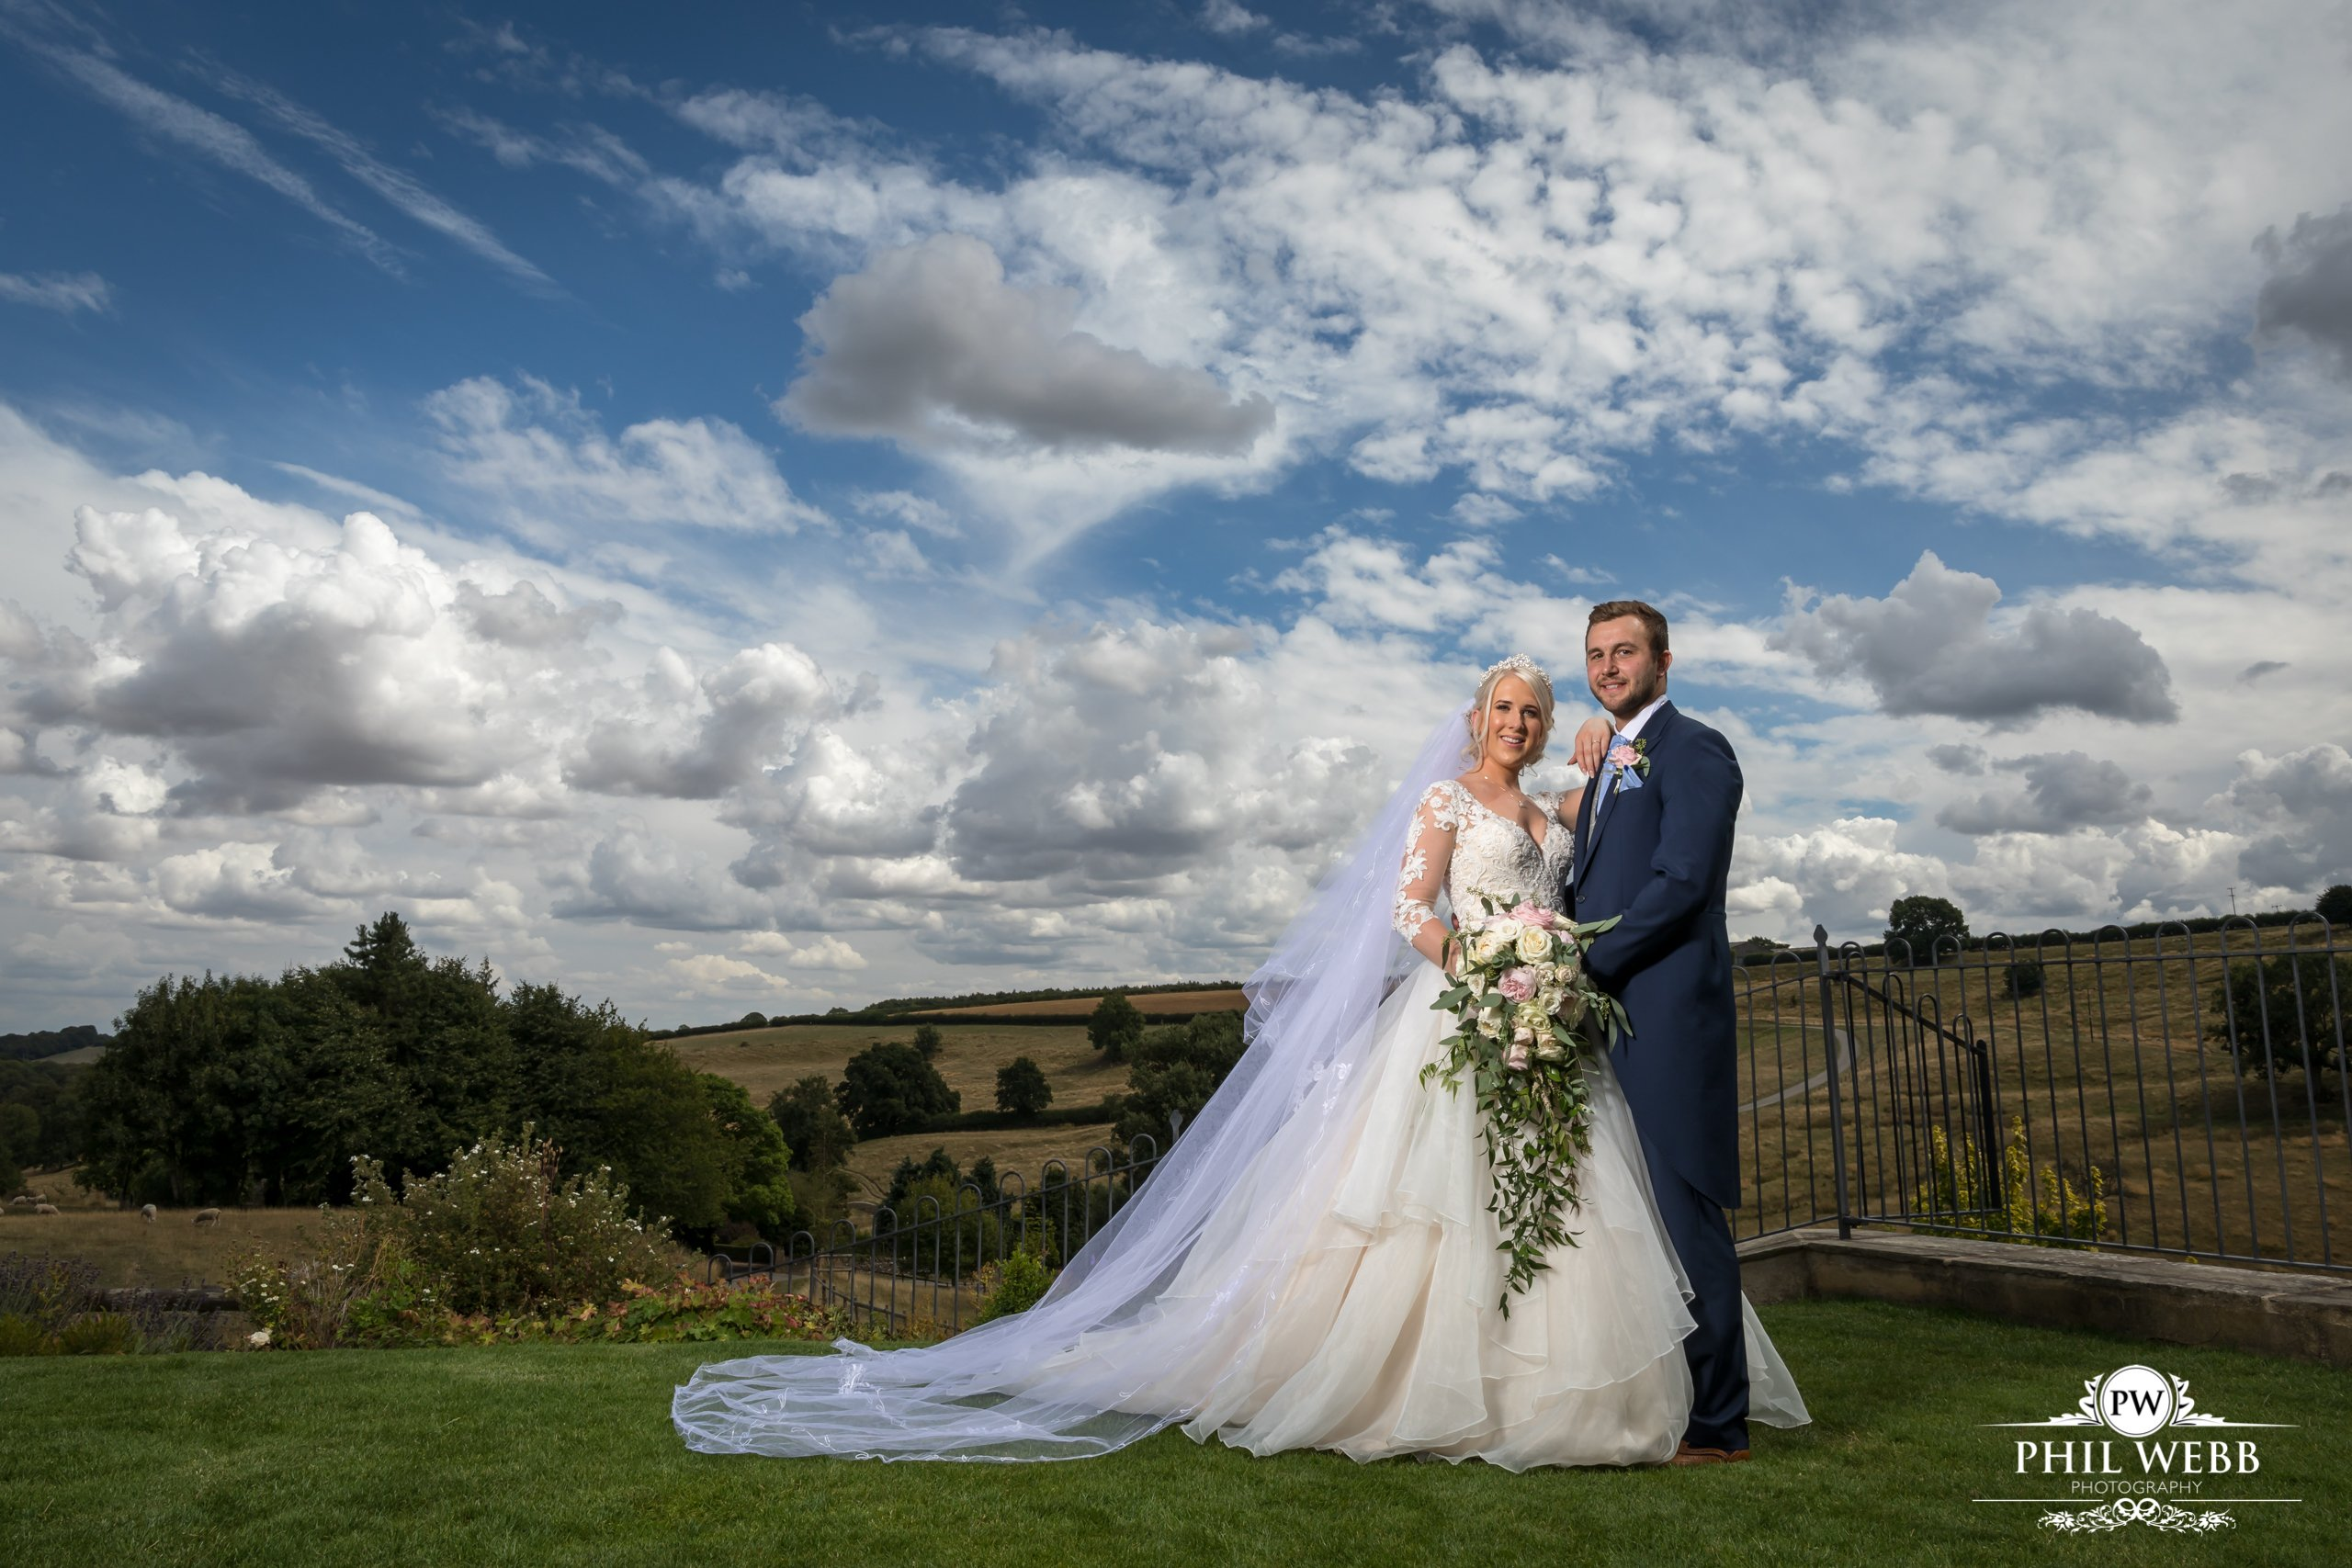 Amber & Paddy's Wedding - Kingscote Barn